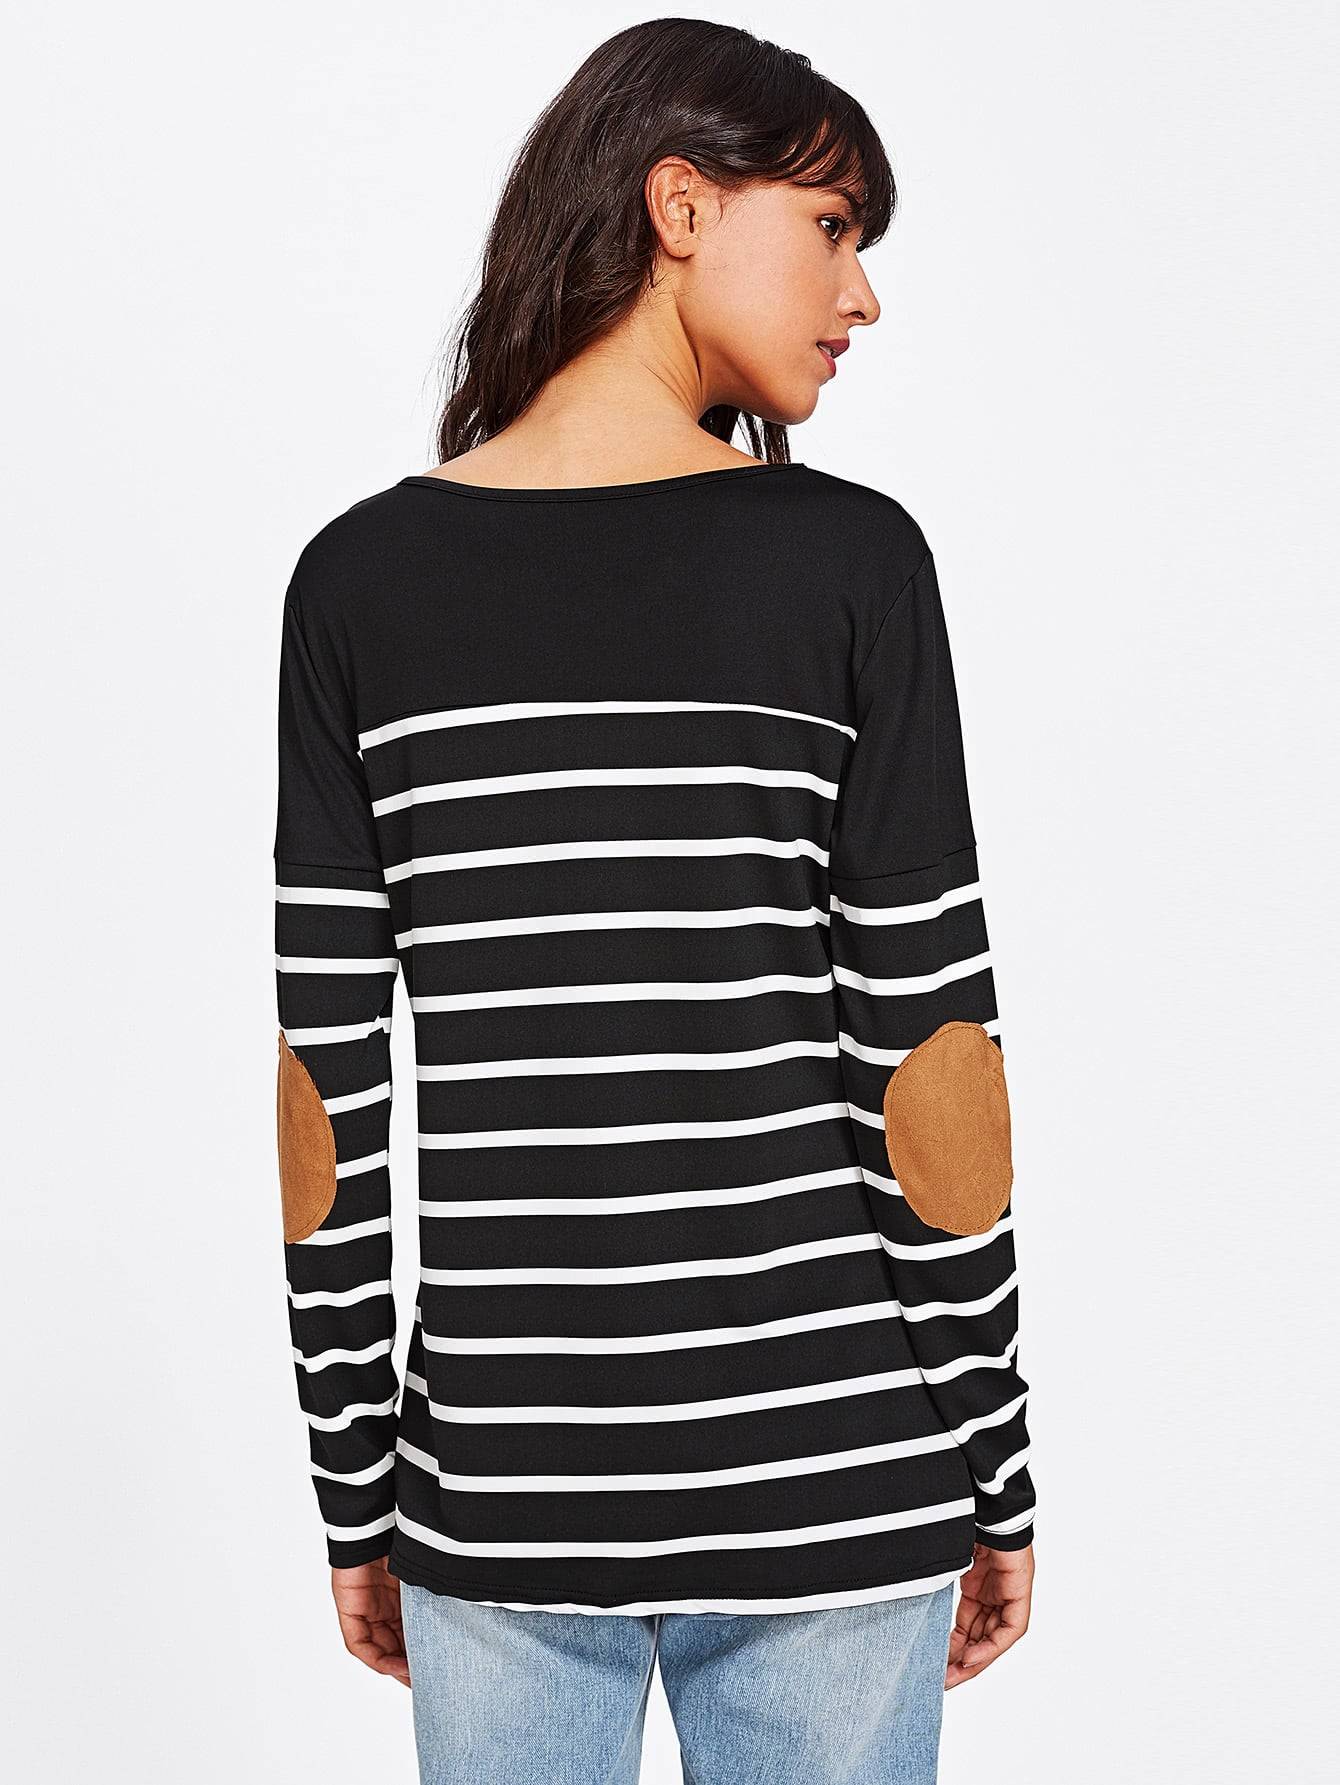 Elbow Patch Striped Tee